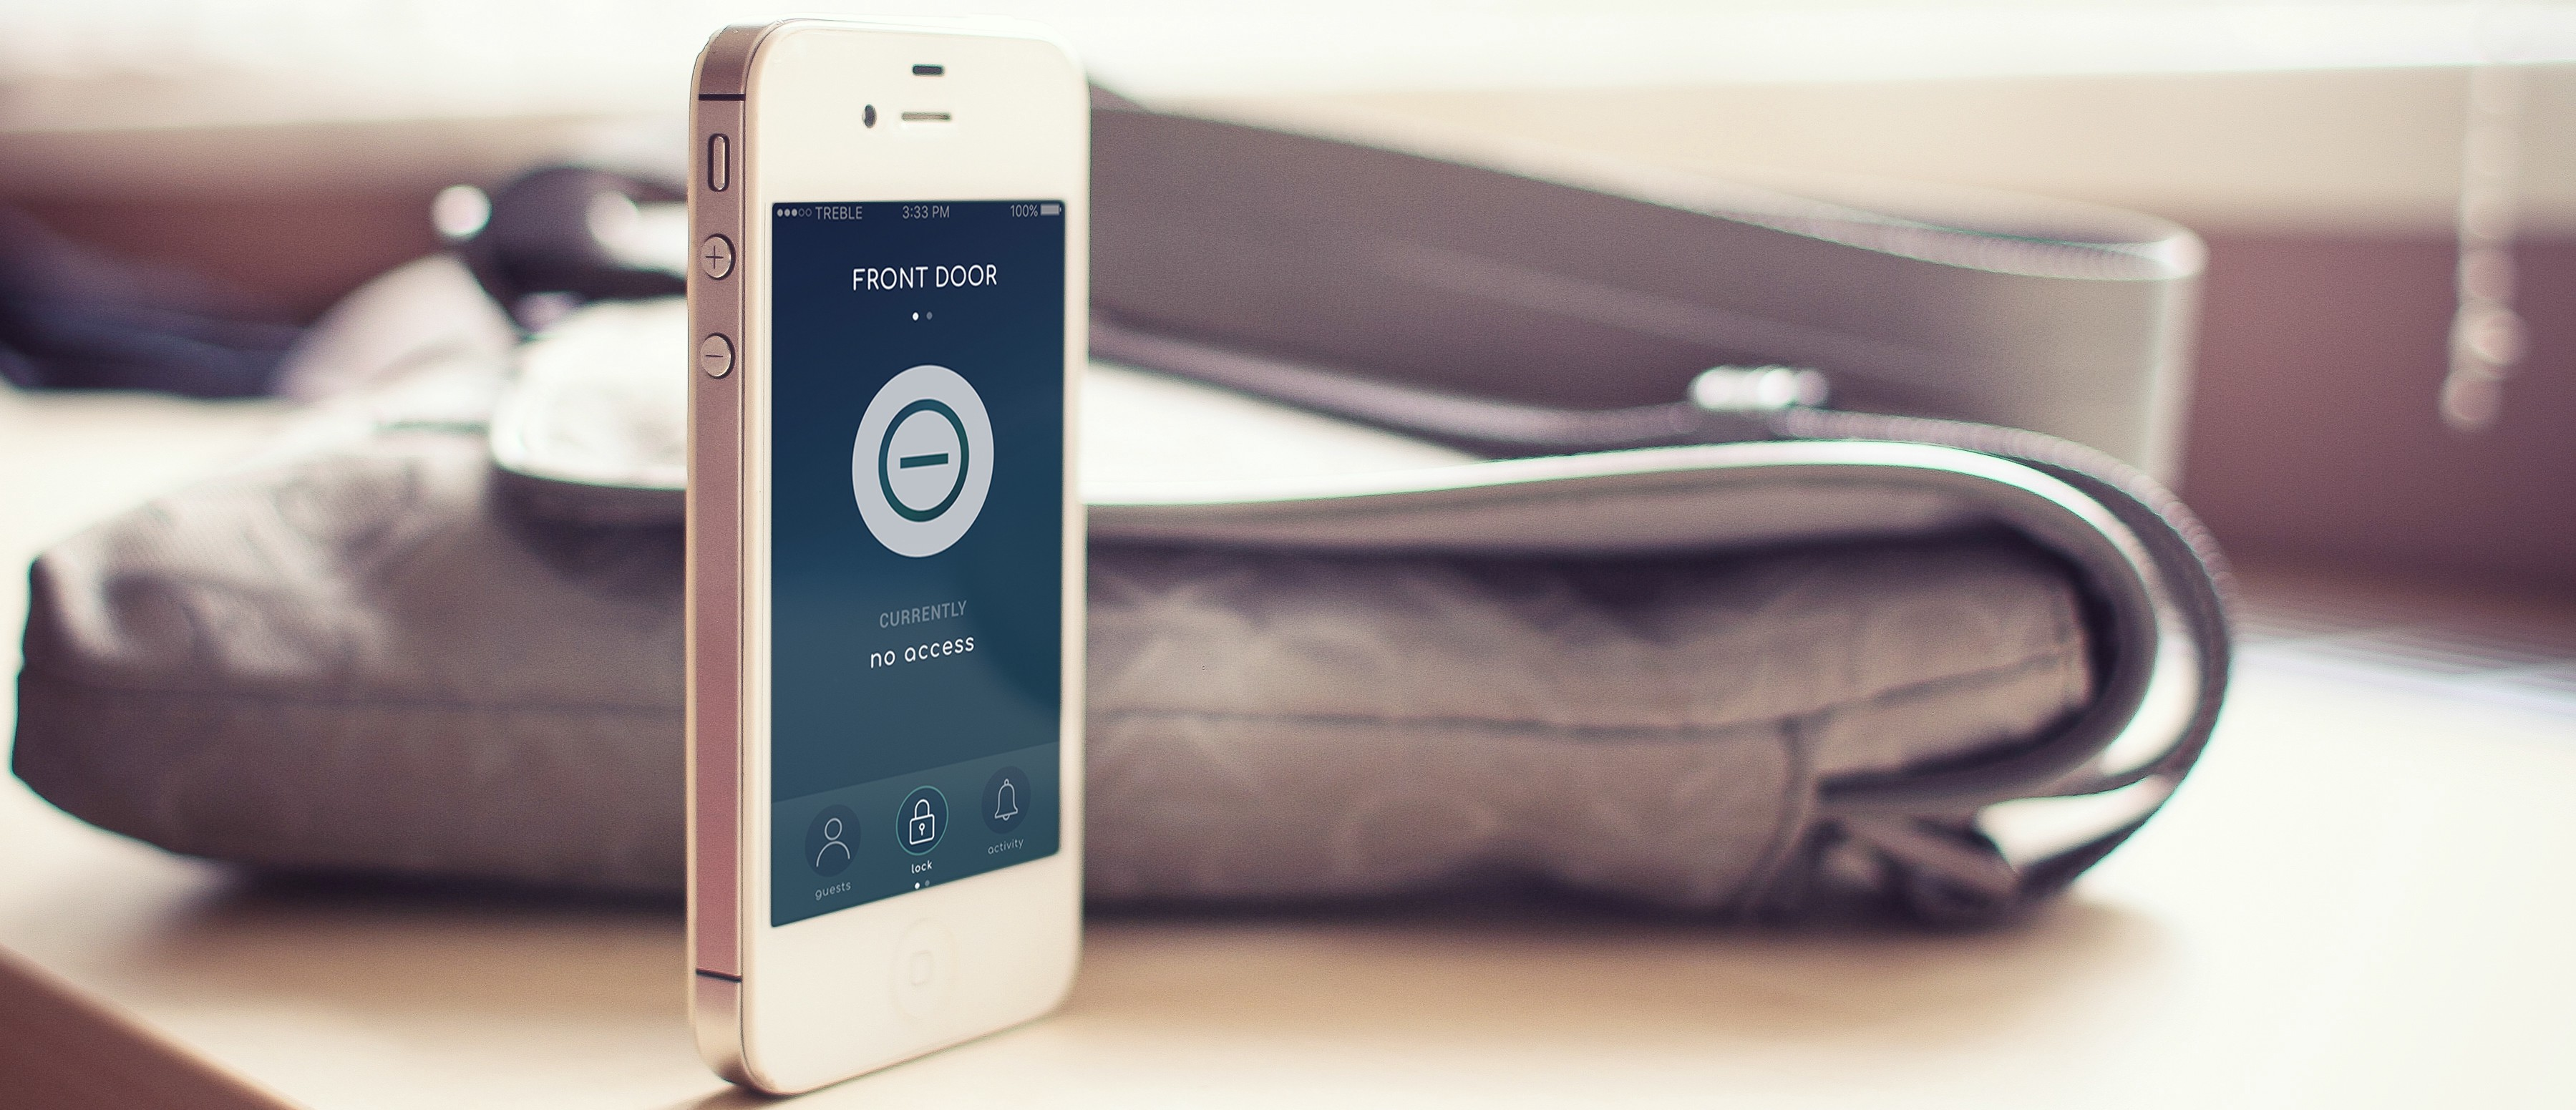 Designing a better user experience for a smart lock system